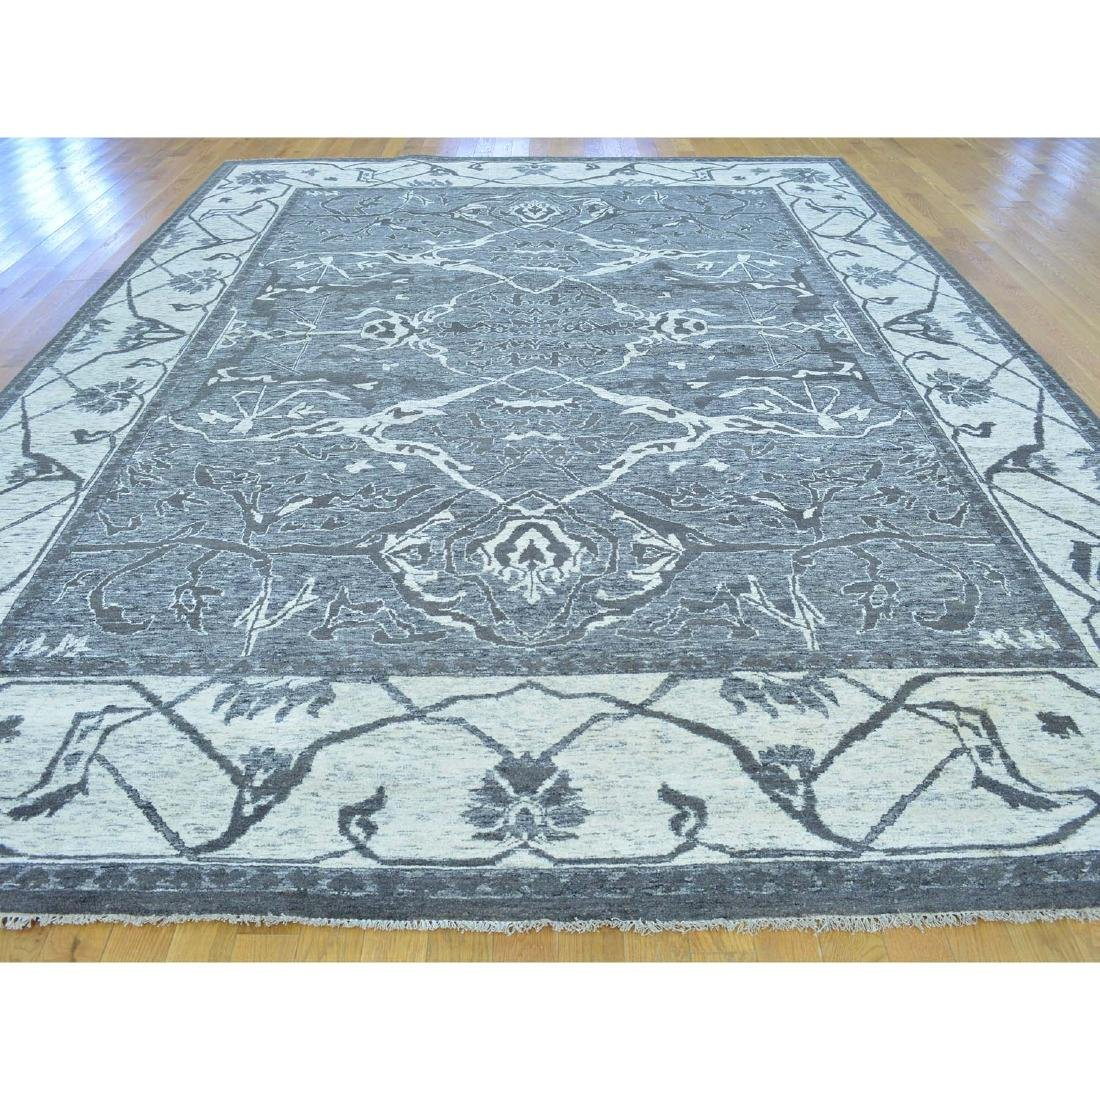 Undyed Natural Wool Hand Knotted Oushak Oriental Rug - 2